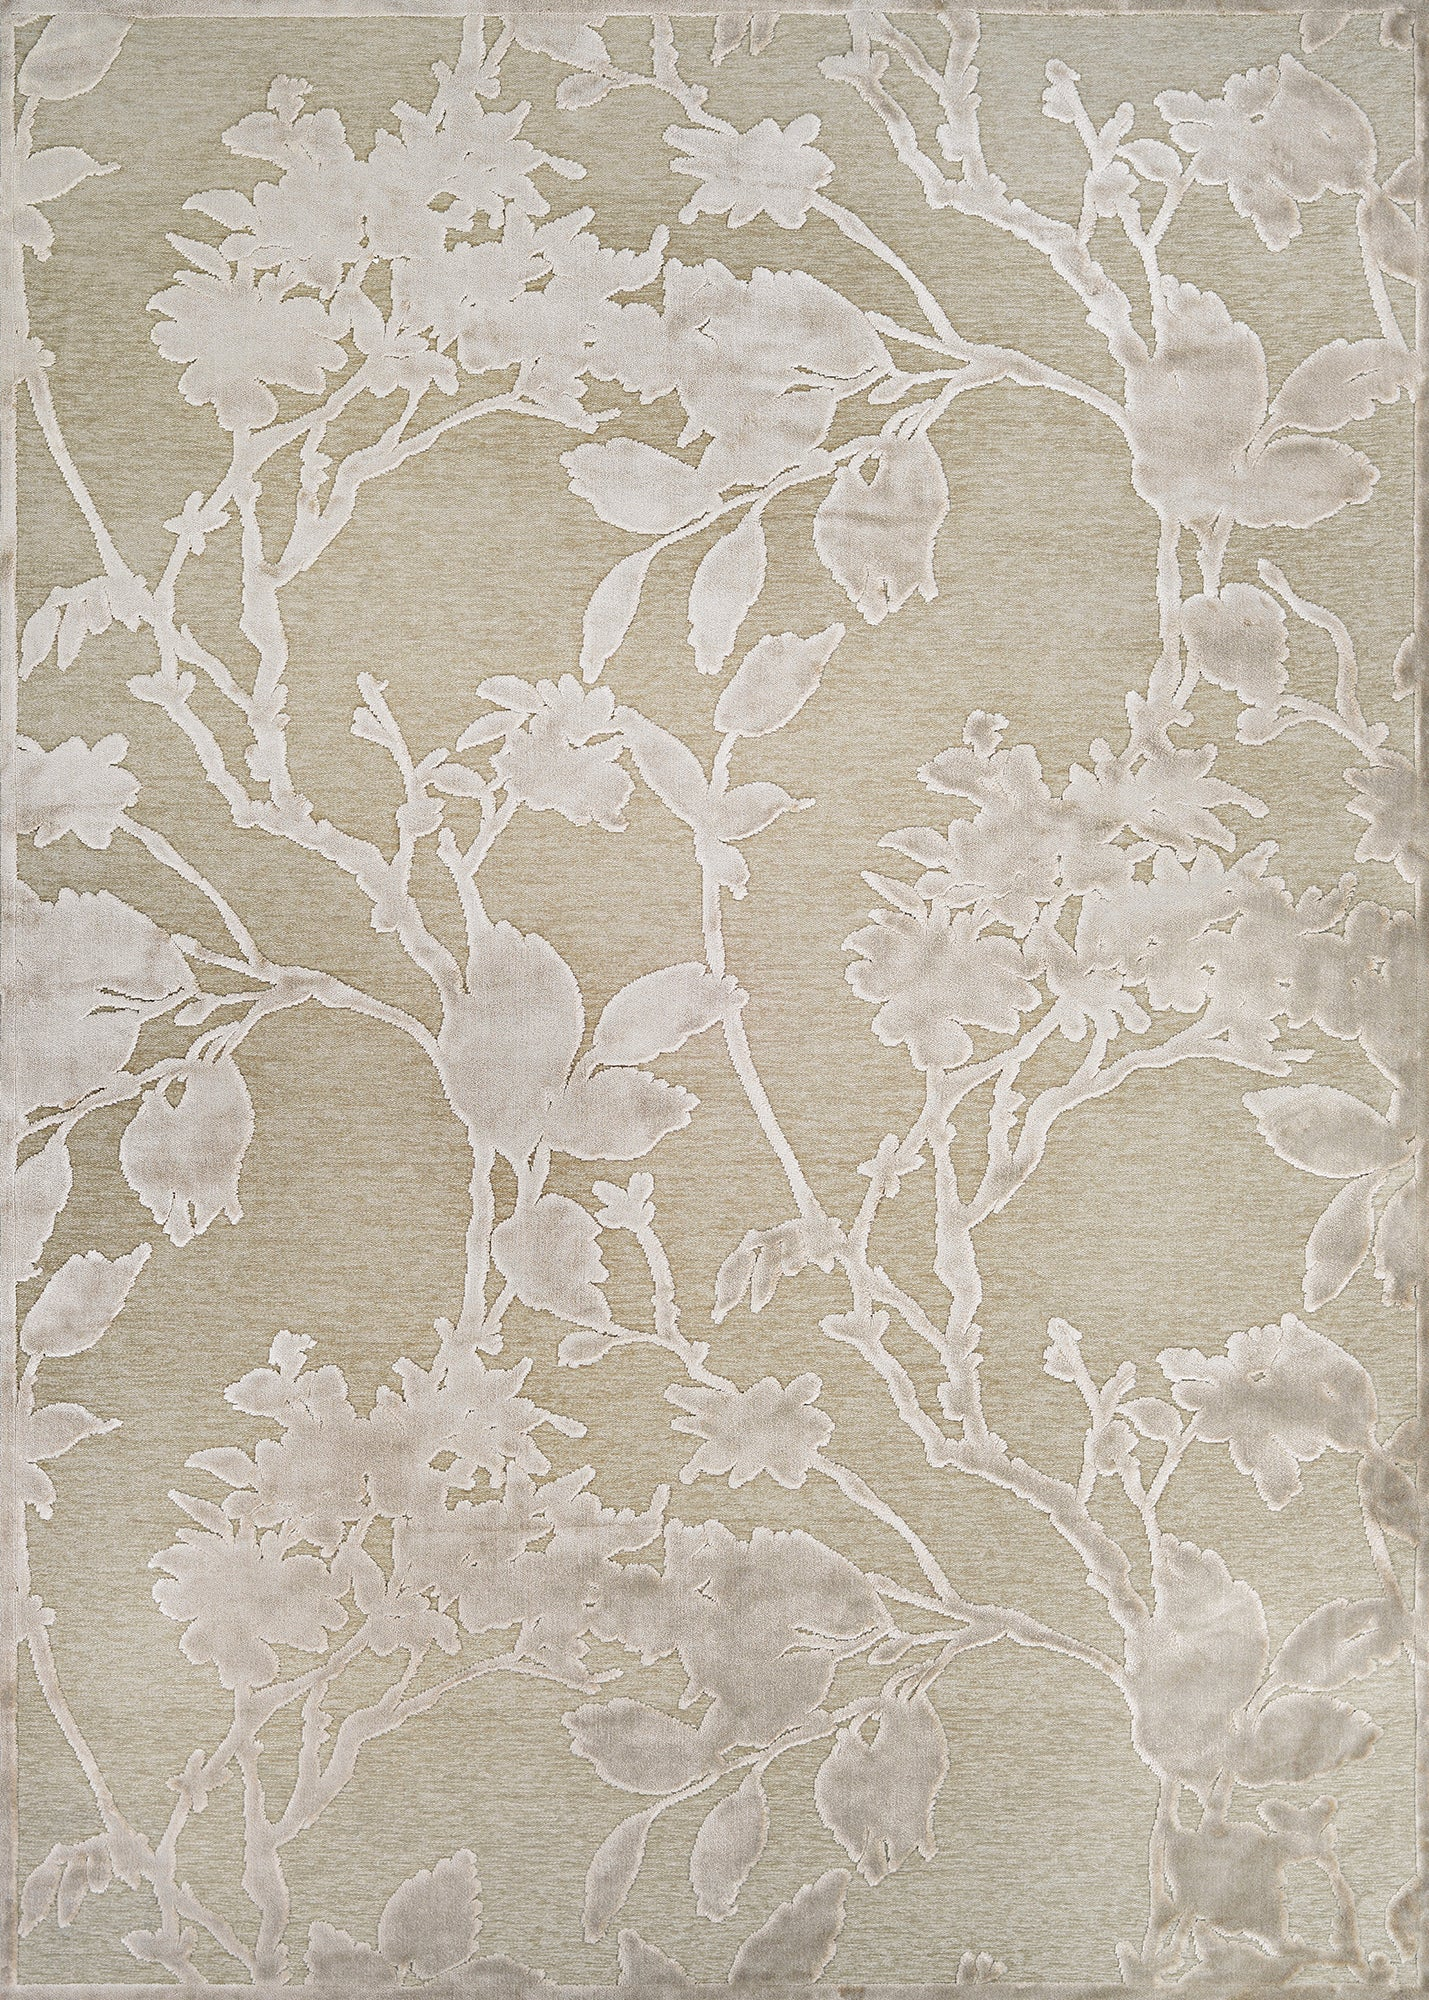 Couristan Cire` Blossom Mushrom/Antique Cream Area Rug main image